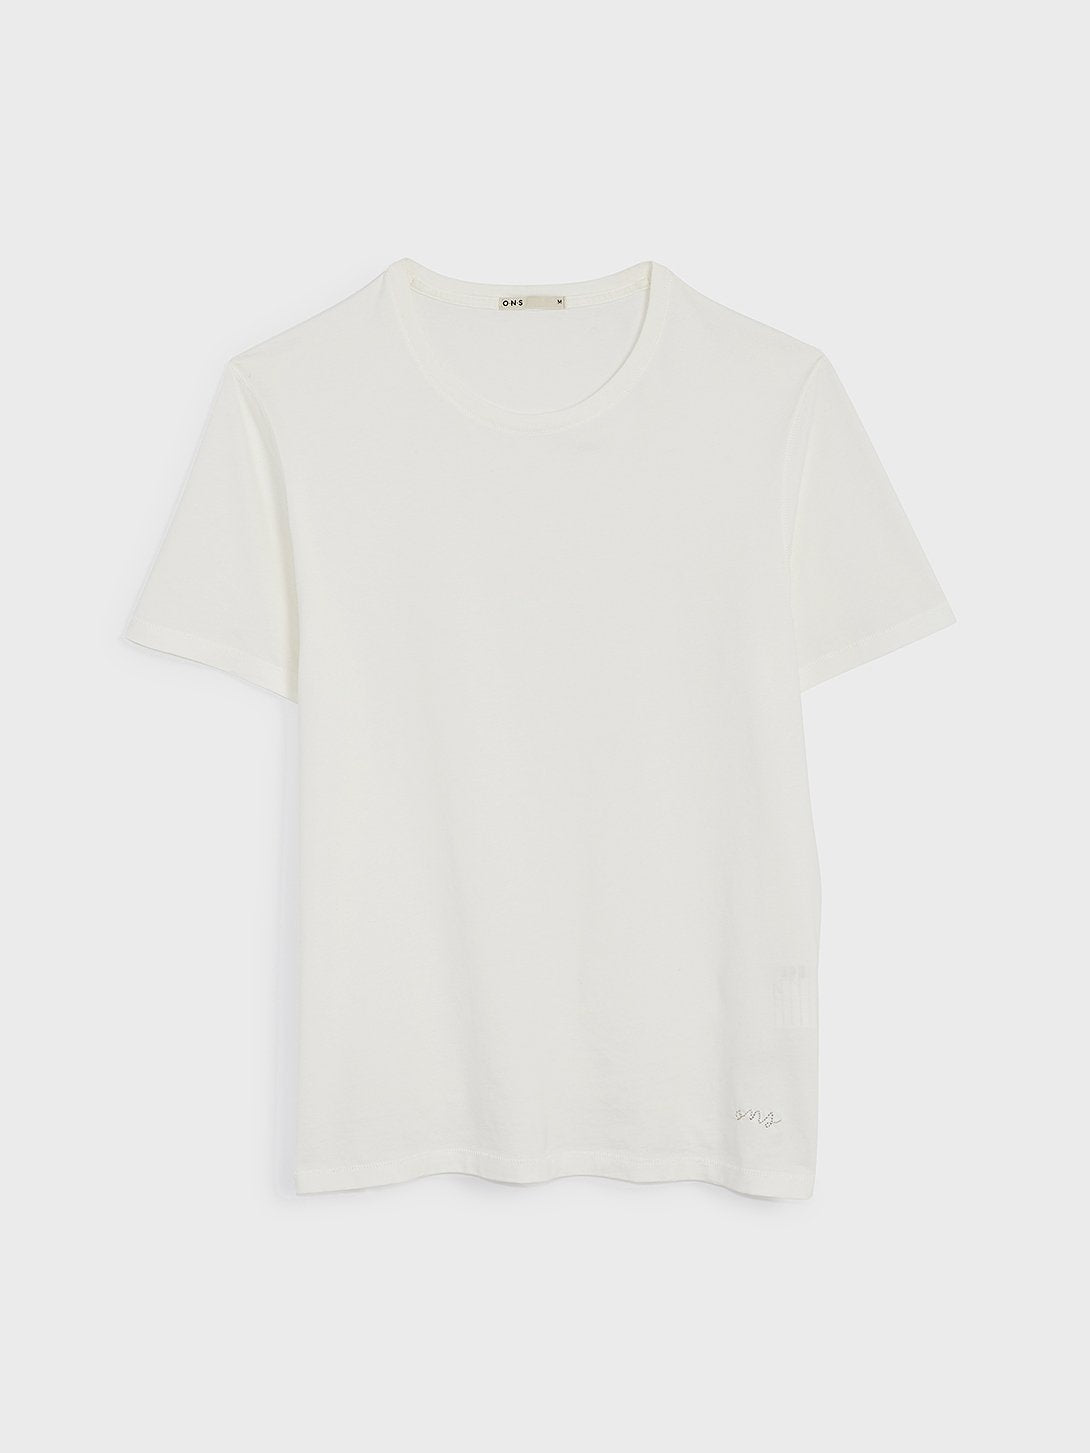 ons village crew neck tee White 100% Supima Cotton, Pre-shrunk cotton. Round-neck men's Tee